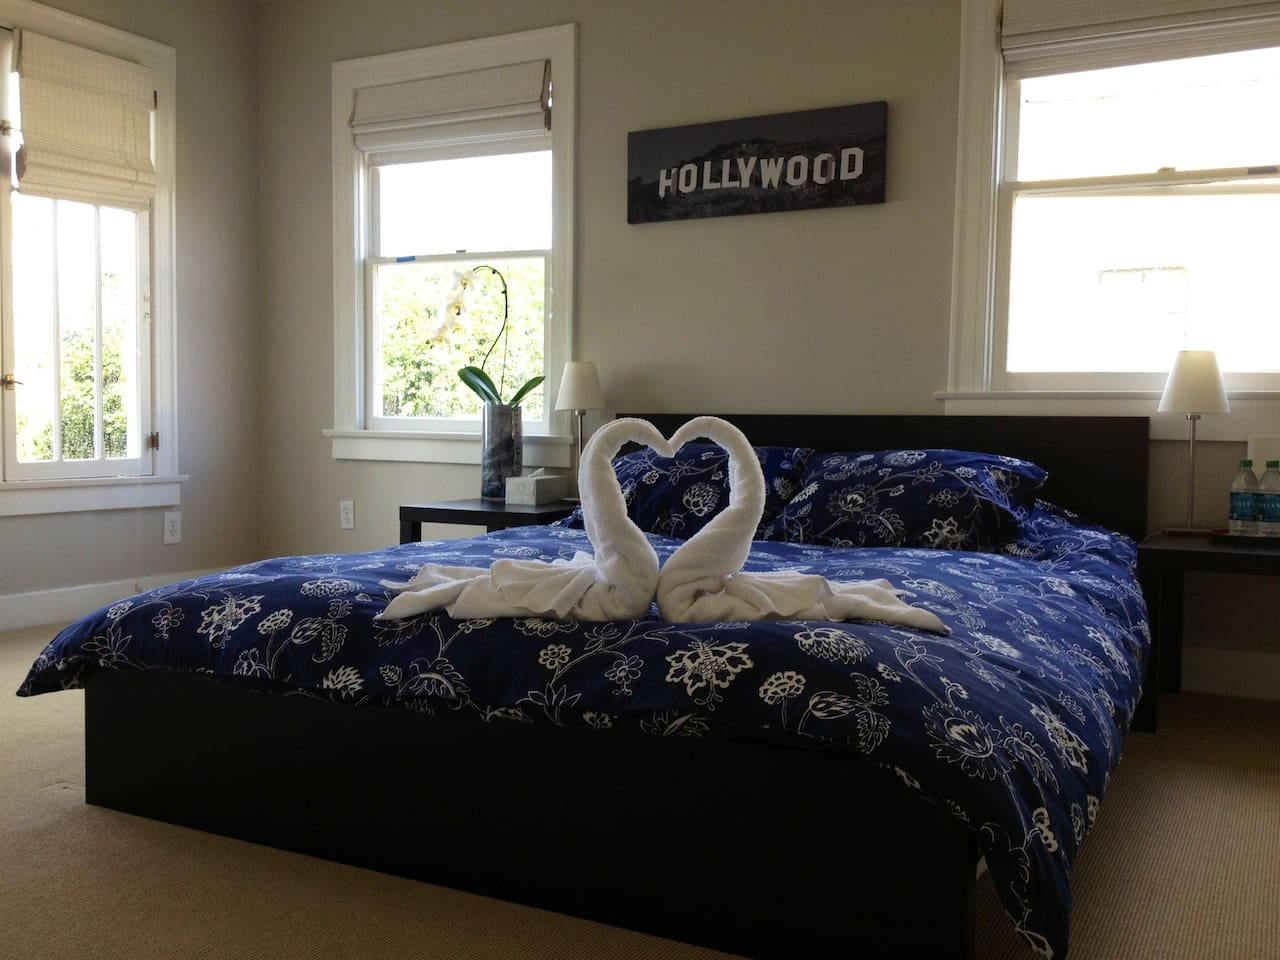 Mahalo Bedroom includes Queen Size Bed, Sofa, Large Closet, Lots of Natural Light